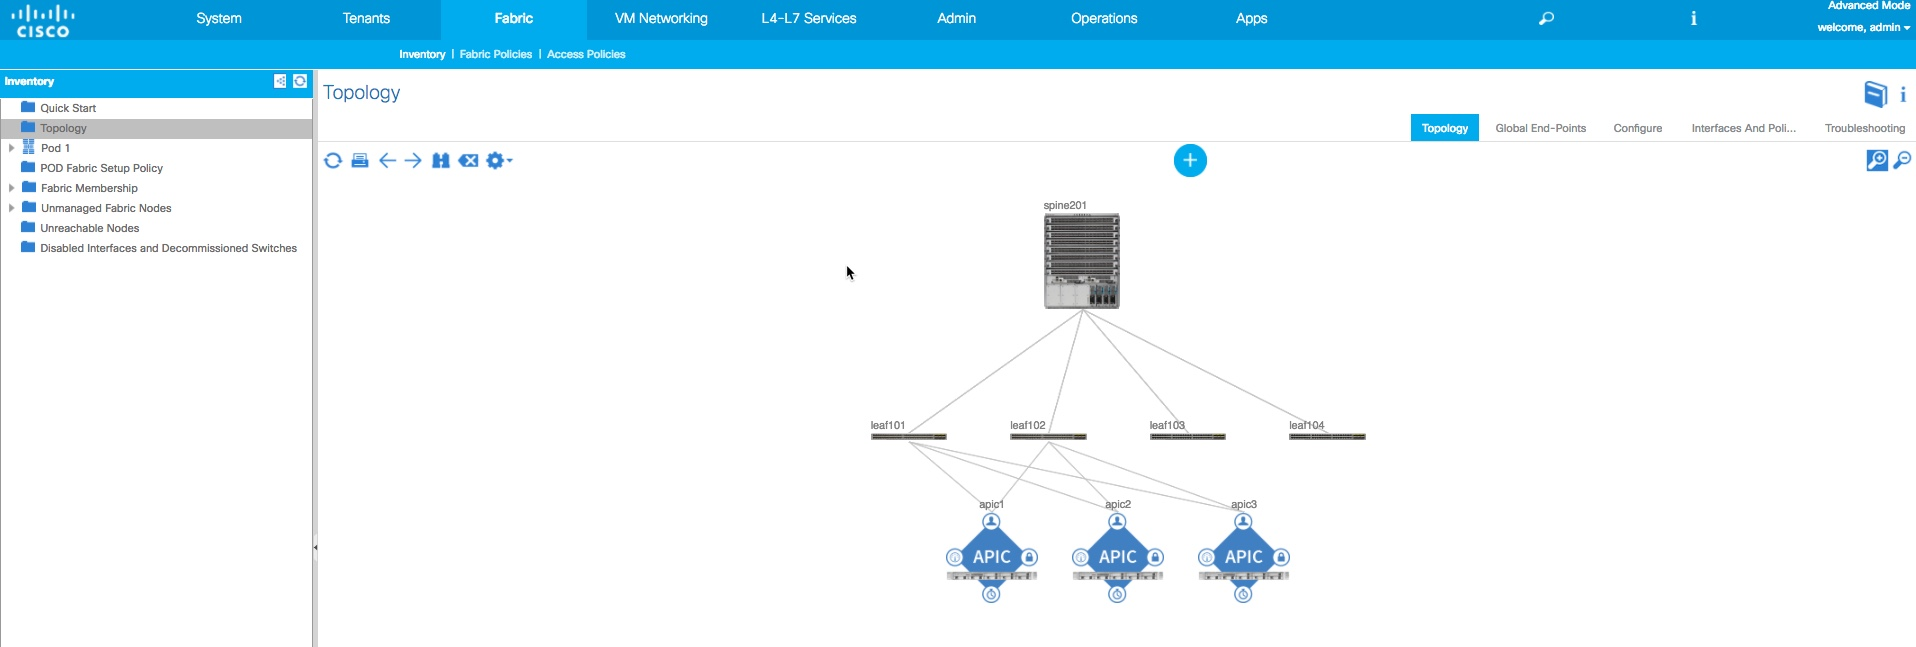 Replacing A Leaf Or Spine Switch In Aci Cisco Community Nexus Smart Wiring Diagram